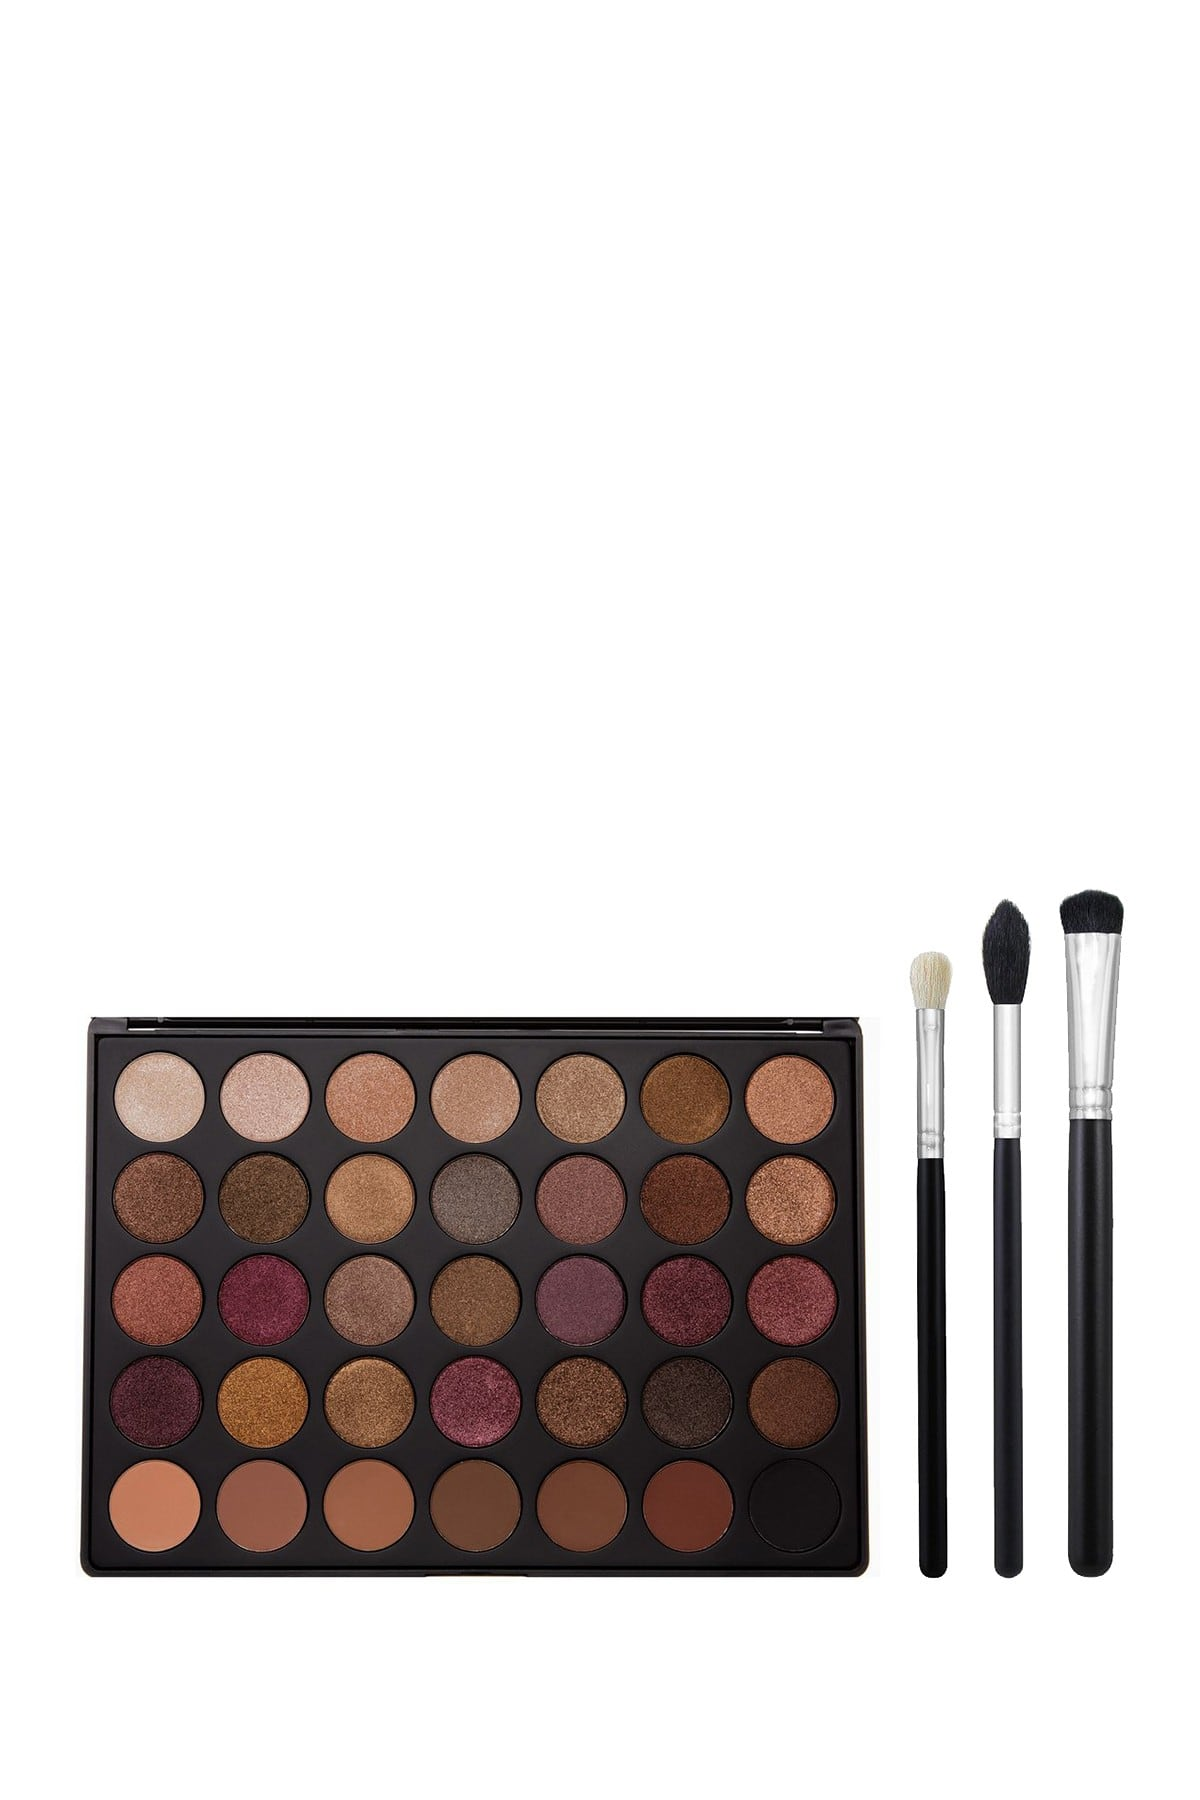 Hautelook: Up to 40% Off Morphe Brushes, Palettes, and Liquid Lipsticks